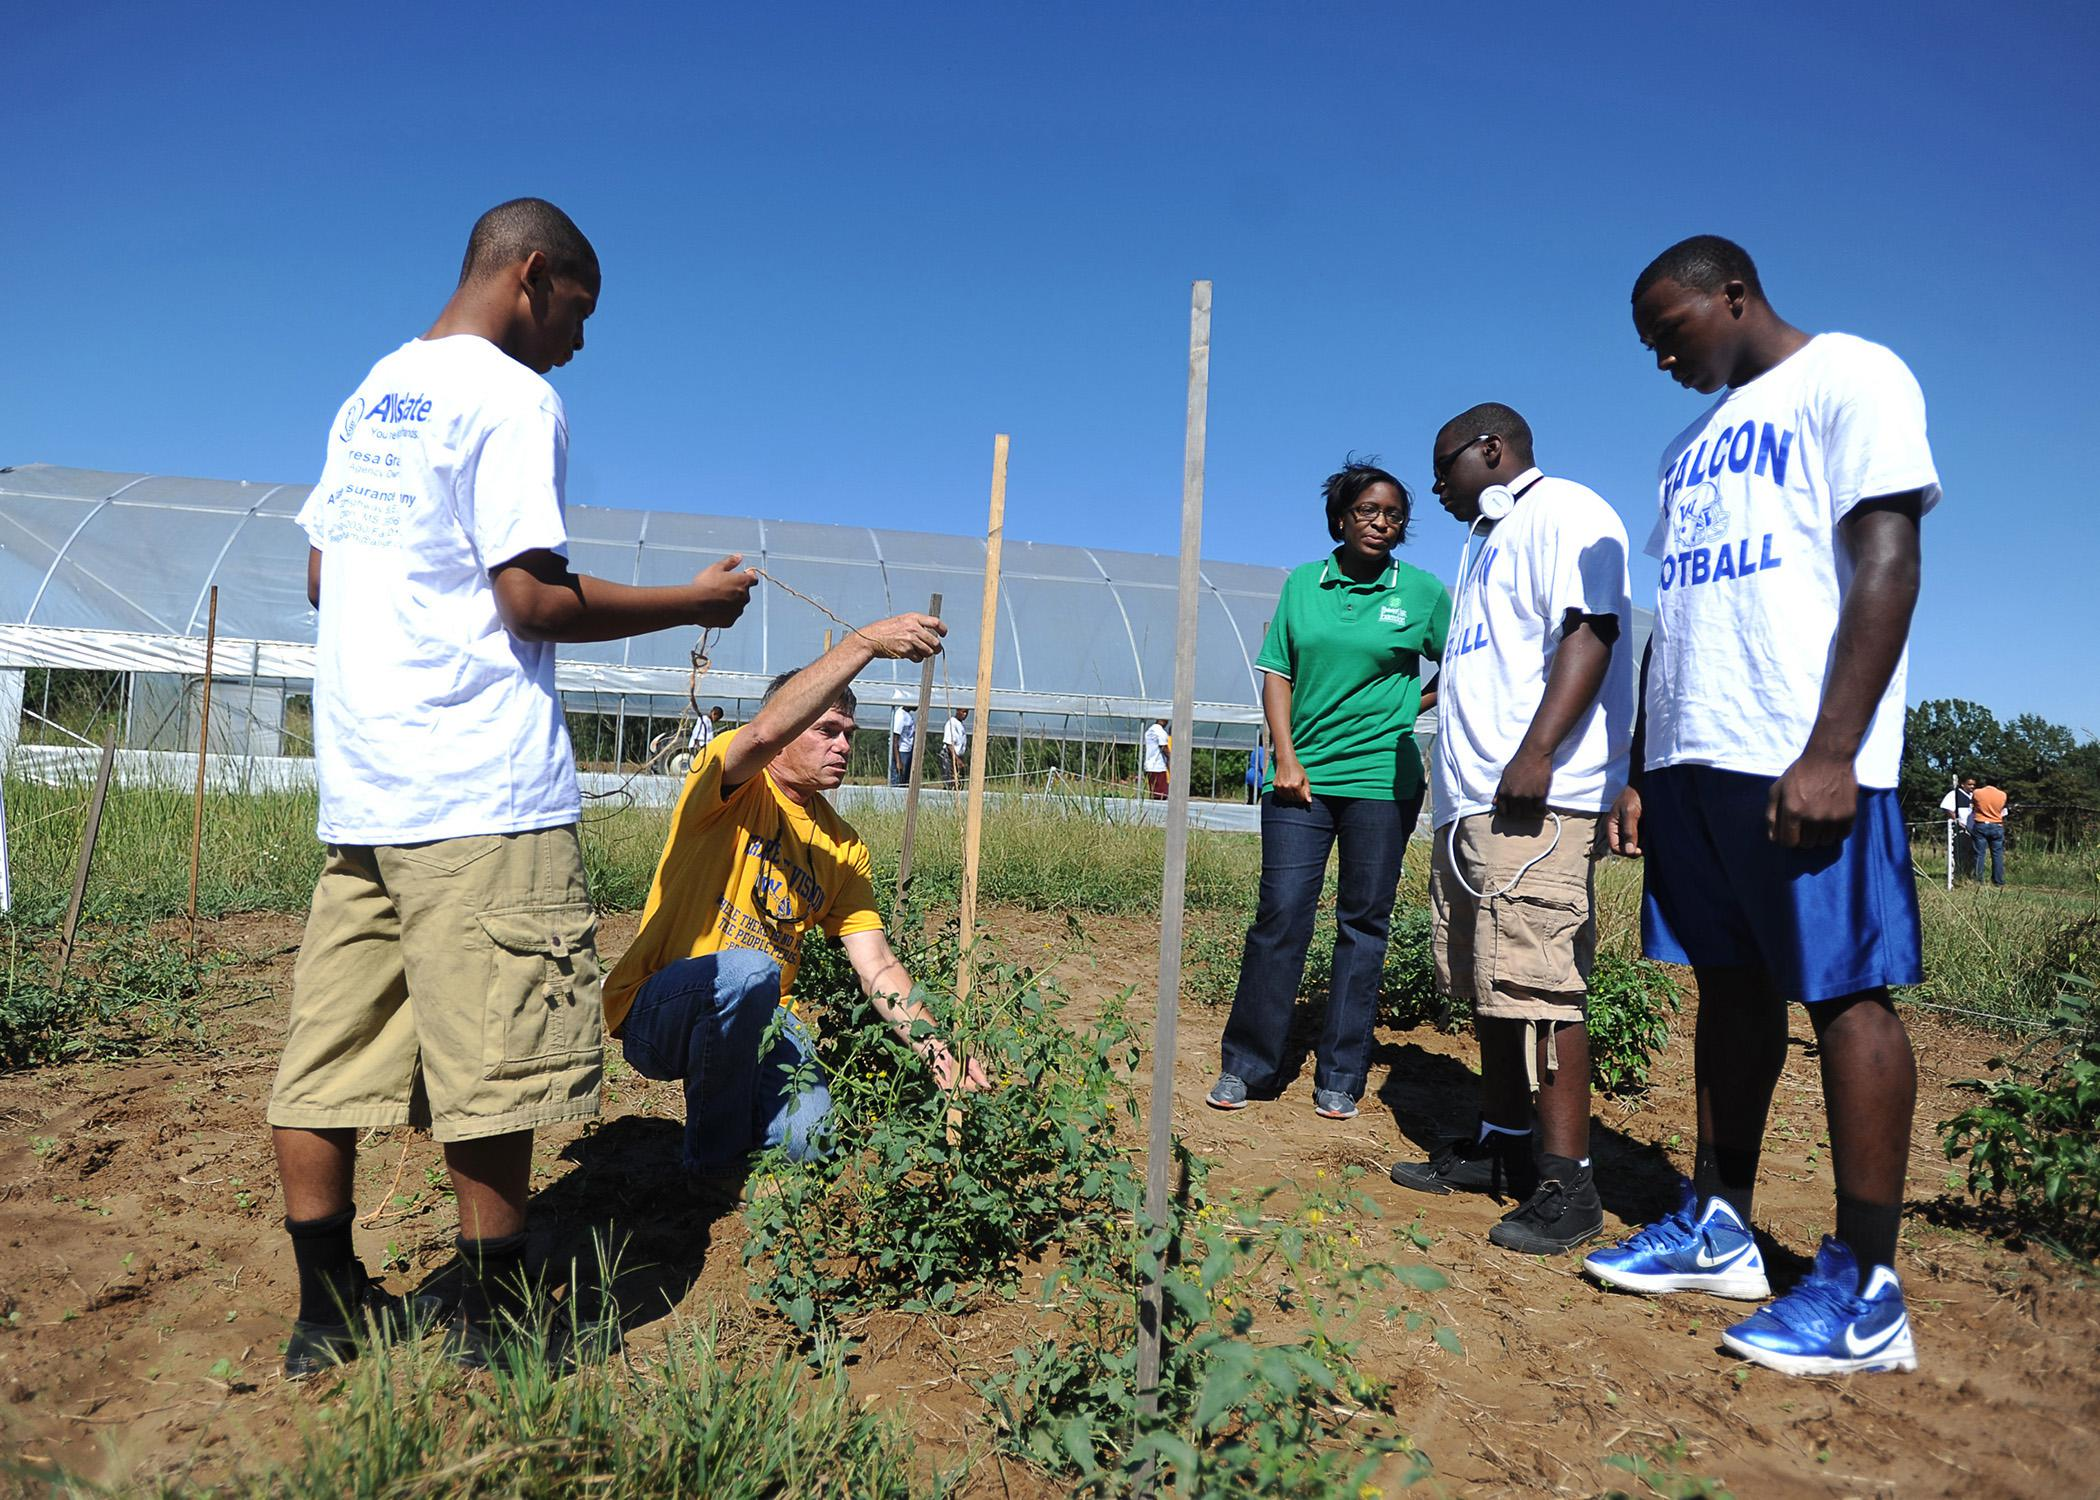 Wingfield High School football team members learn about gardening on Sept. 22, 2013, at Foot Print Farms in Jackson. Eric Hunter Jr., a strong safety, assists Mississippi State University research professor and 4-H volunteer Bill Evans as they string tomato plants. Hinds County 4-H agent Rocheryl Ware discusses the club project with Dwight Henry, a defensive tackle, while Antonio Wilks Jr., defensive end, observes. (Photo by Clarion-Ledger/Joe Ellis)